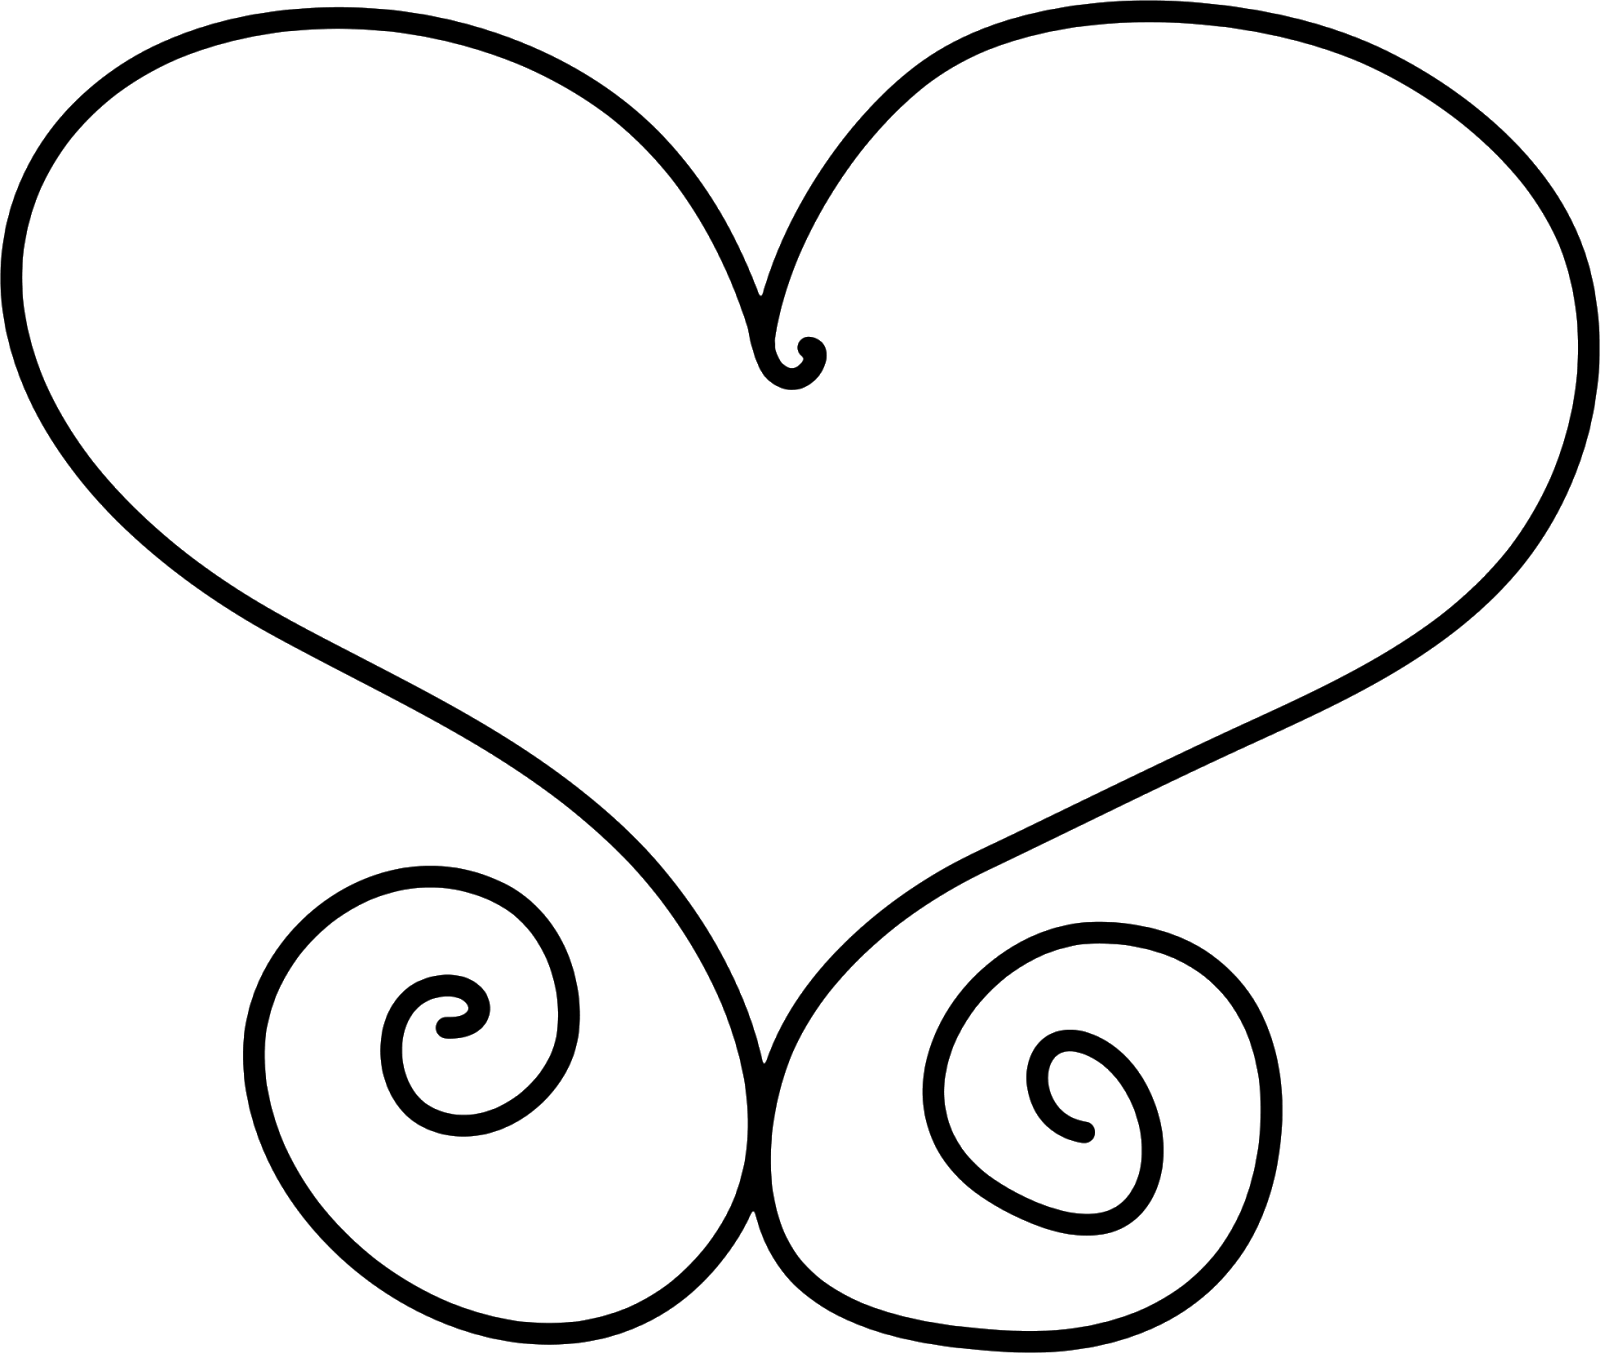 Free Swirly Images Download Free Clip Art Free Clip Art